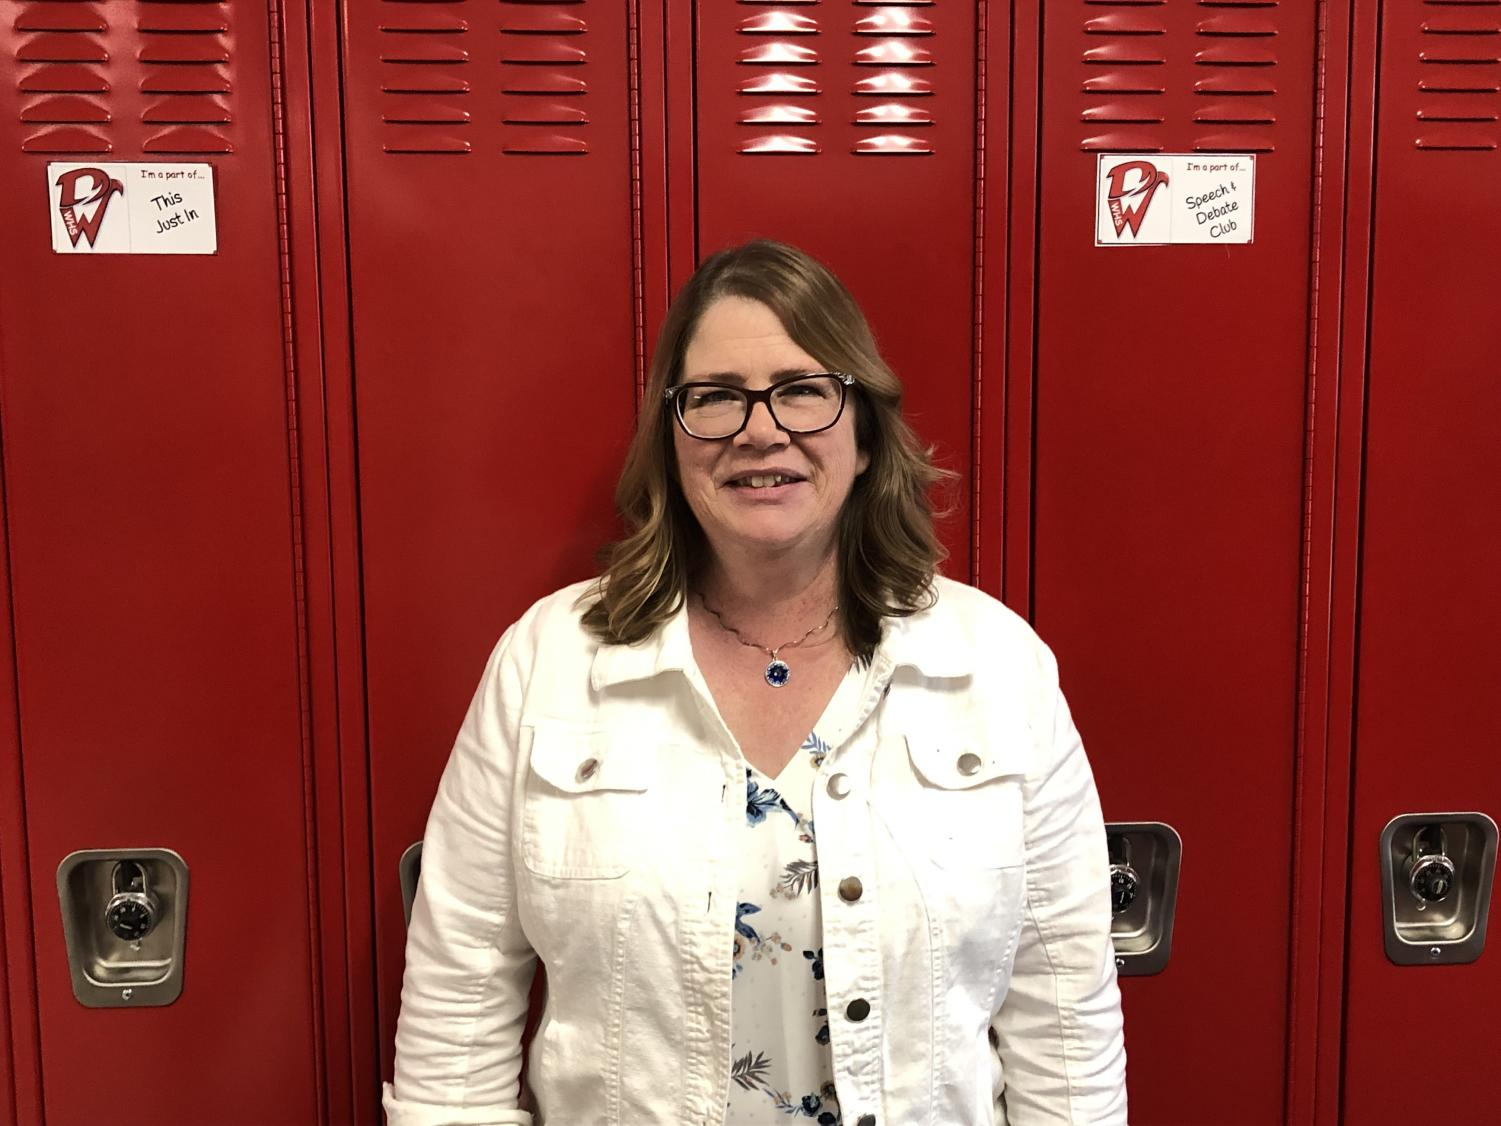 Tammy Burton is a the world language department head at West, more specifically teaching the advanced levels of Spanish, such as dual credit. She believes that reaching higher levels of language learning increases student motivation immensely.